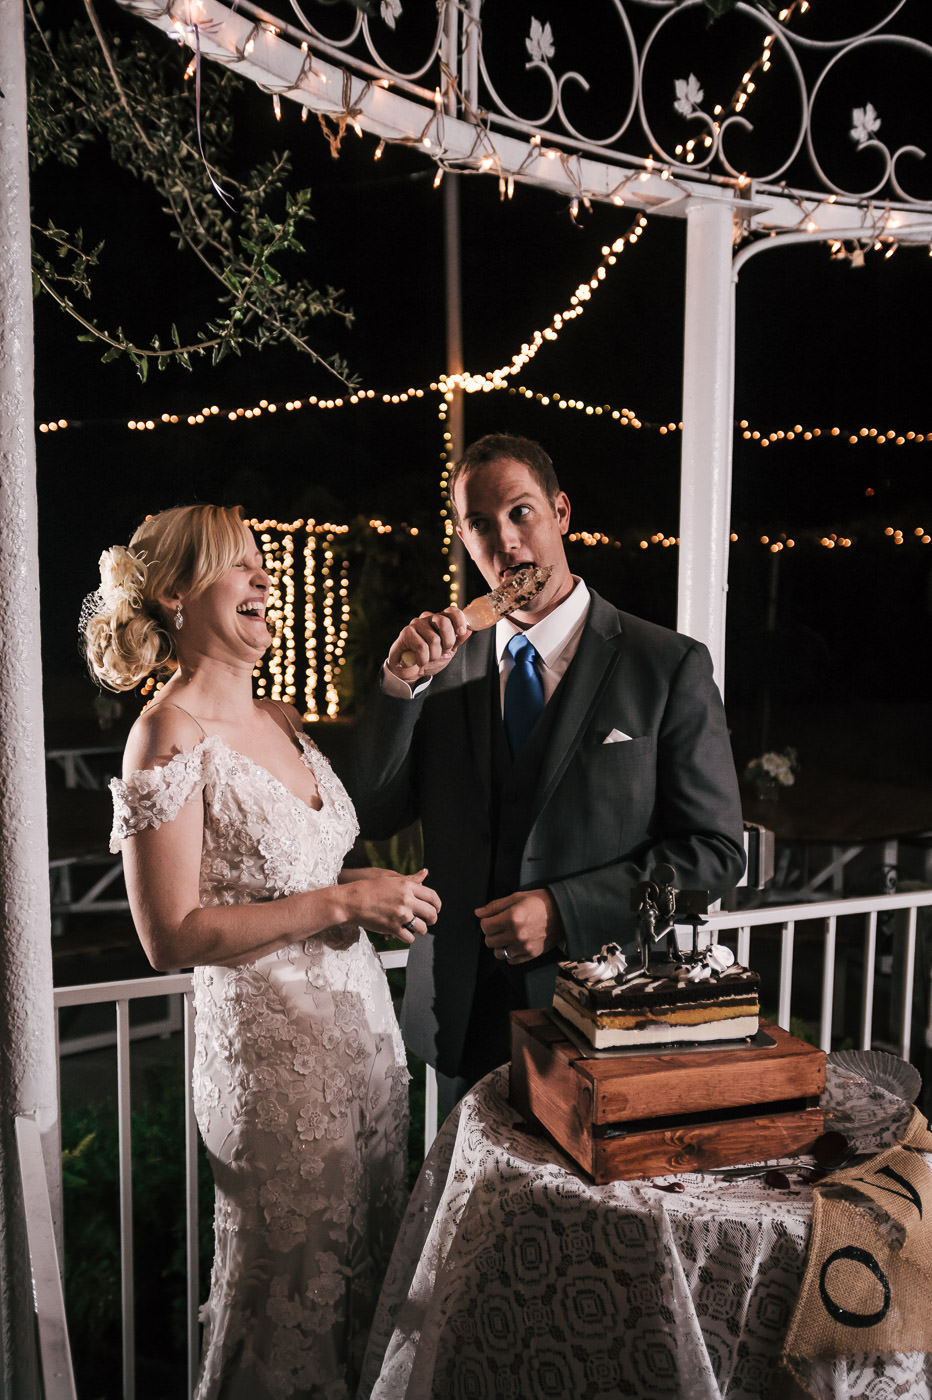 groom gets a big laugh from his bride by licking the cake cutting knife